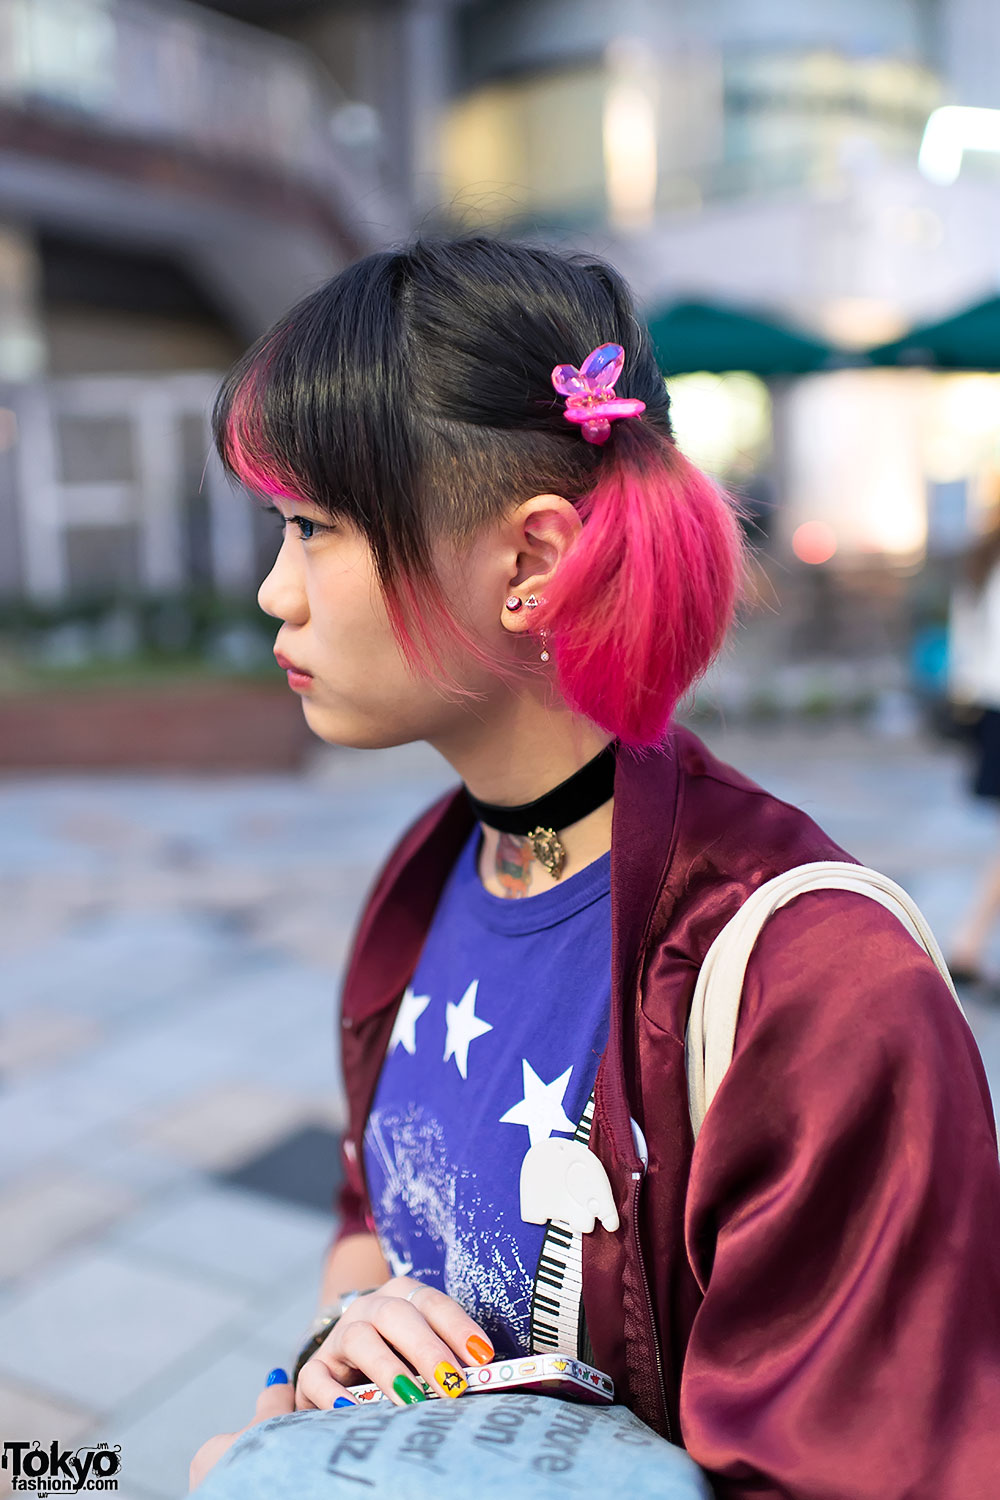 Pink Twintails Hairstyle Amp American Apparel Clutch In Harajuku